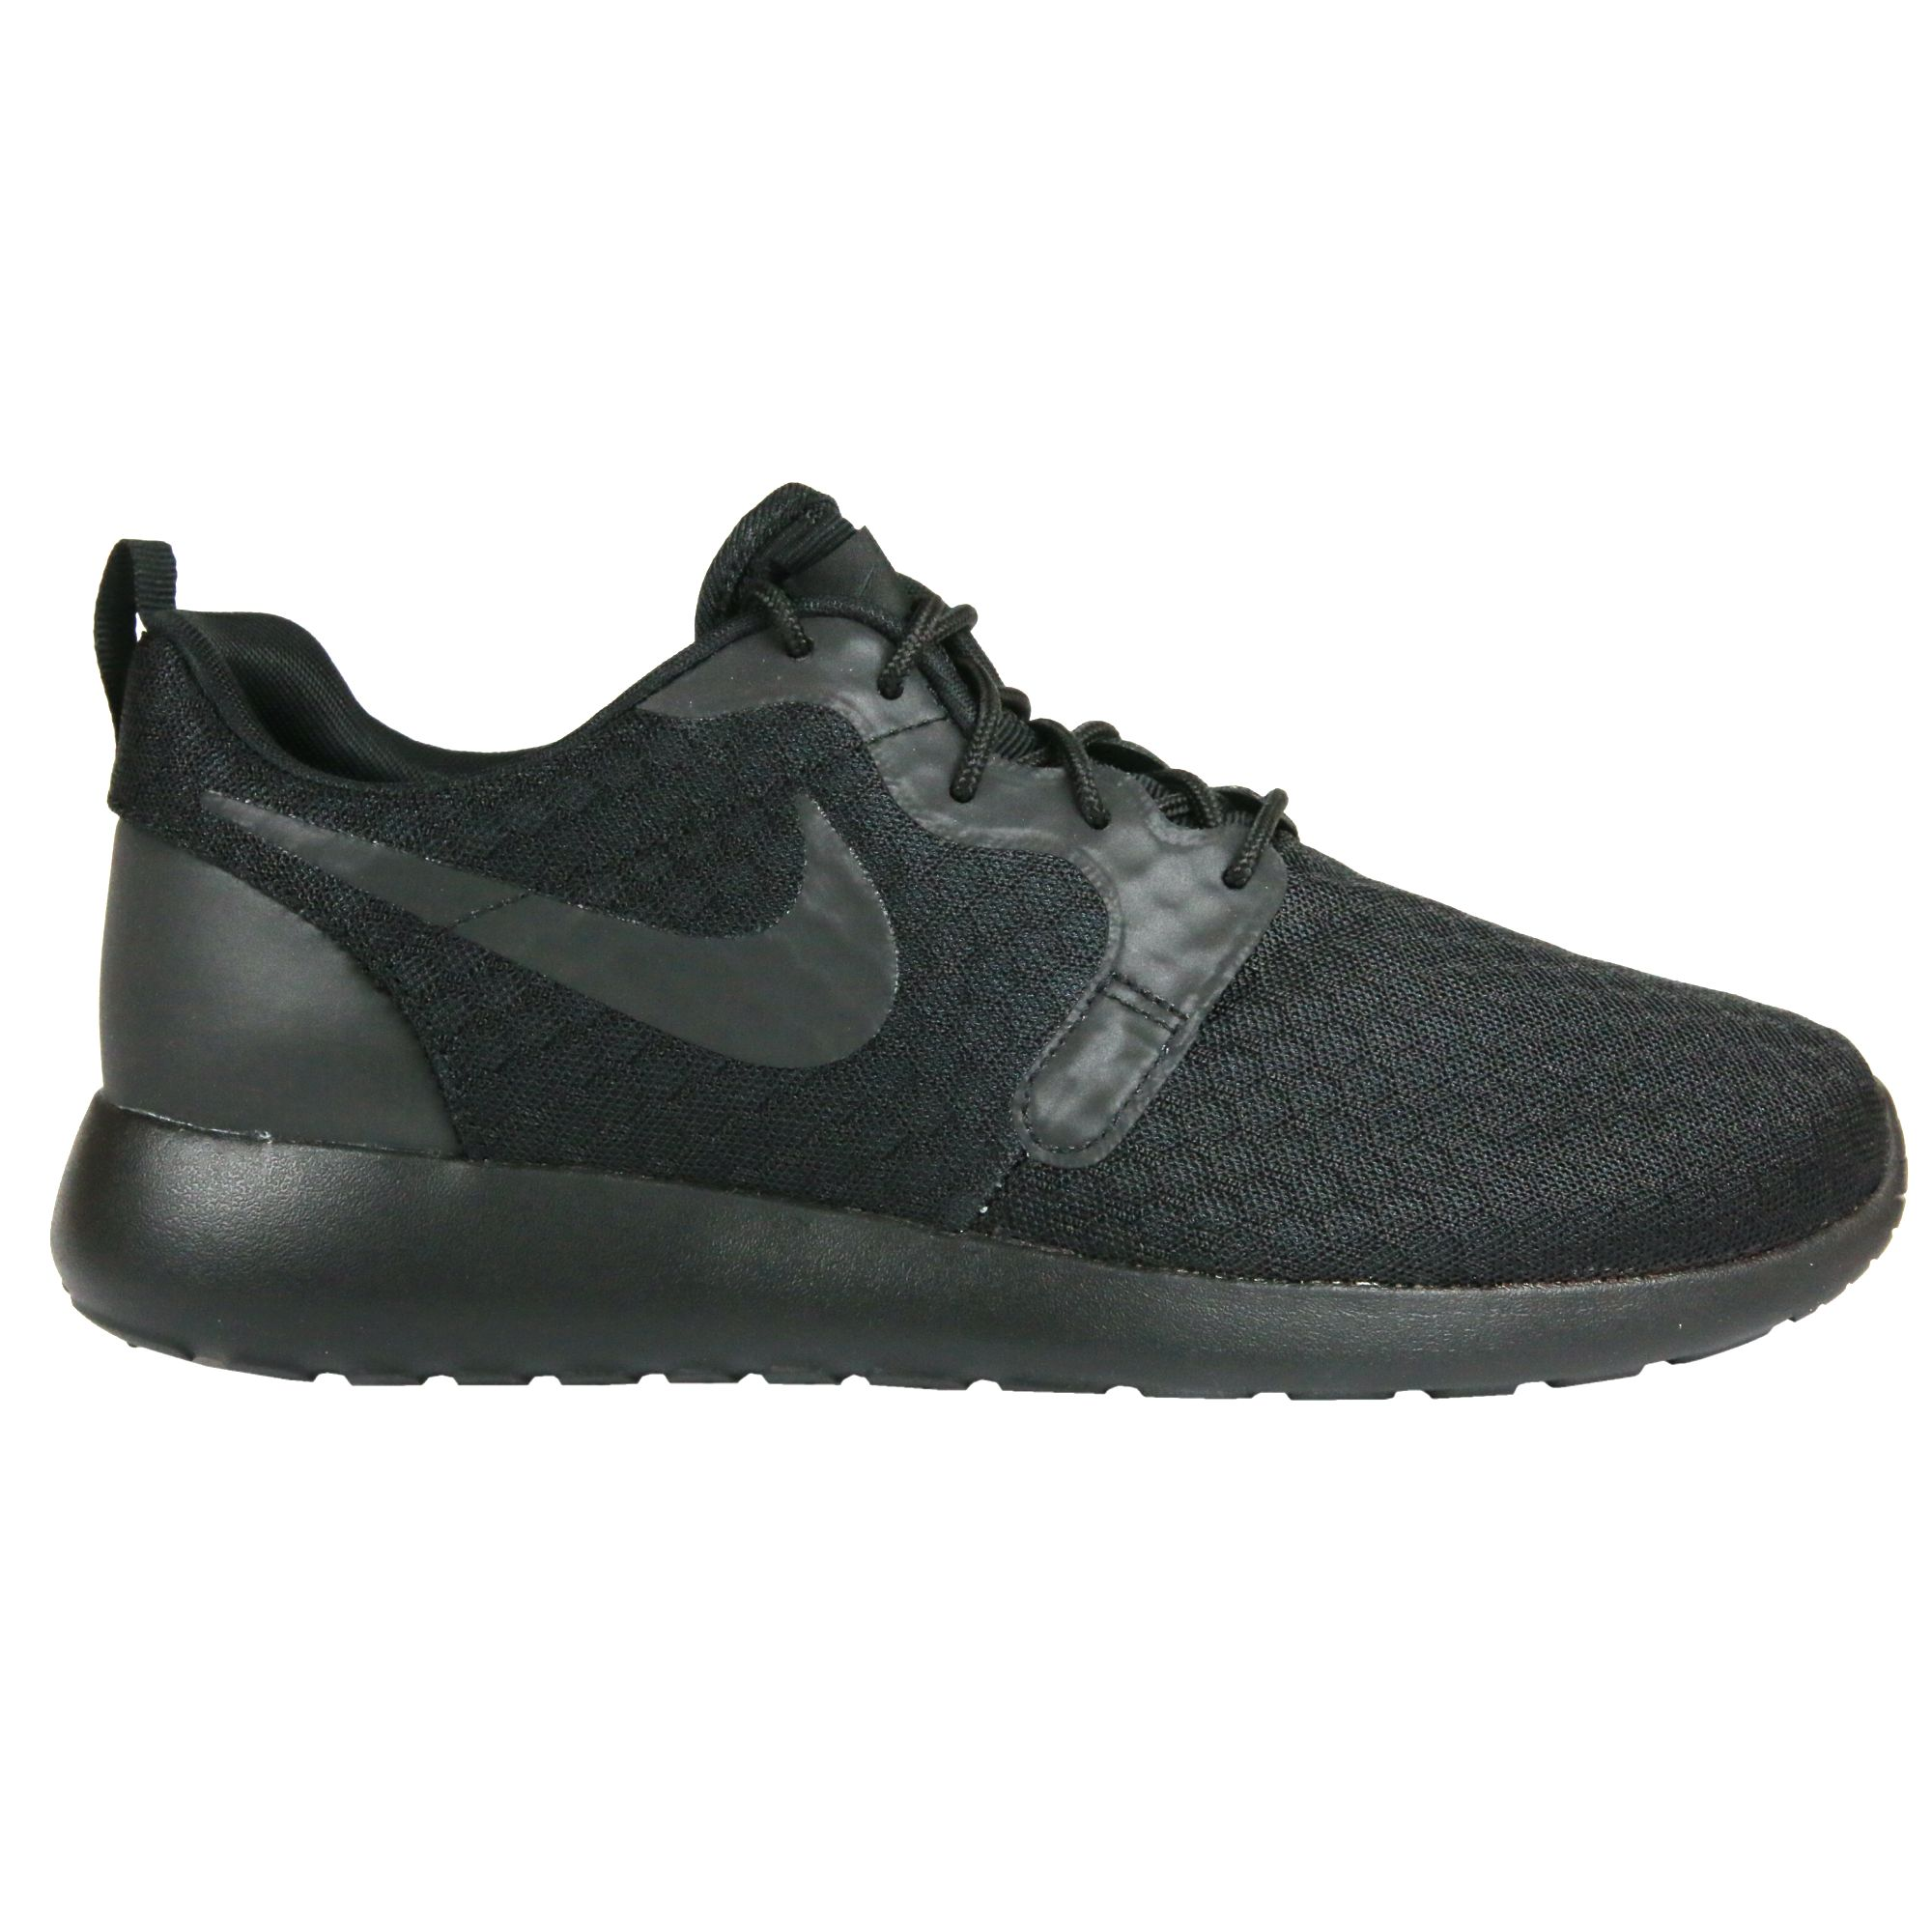 nike roshe one schuhe turnschuhe sneaker herren run rosherun. Black Bedroom Furniture Sets. Home Design Ideas